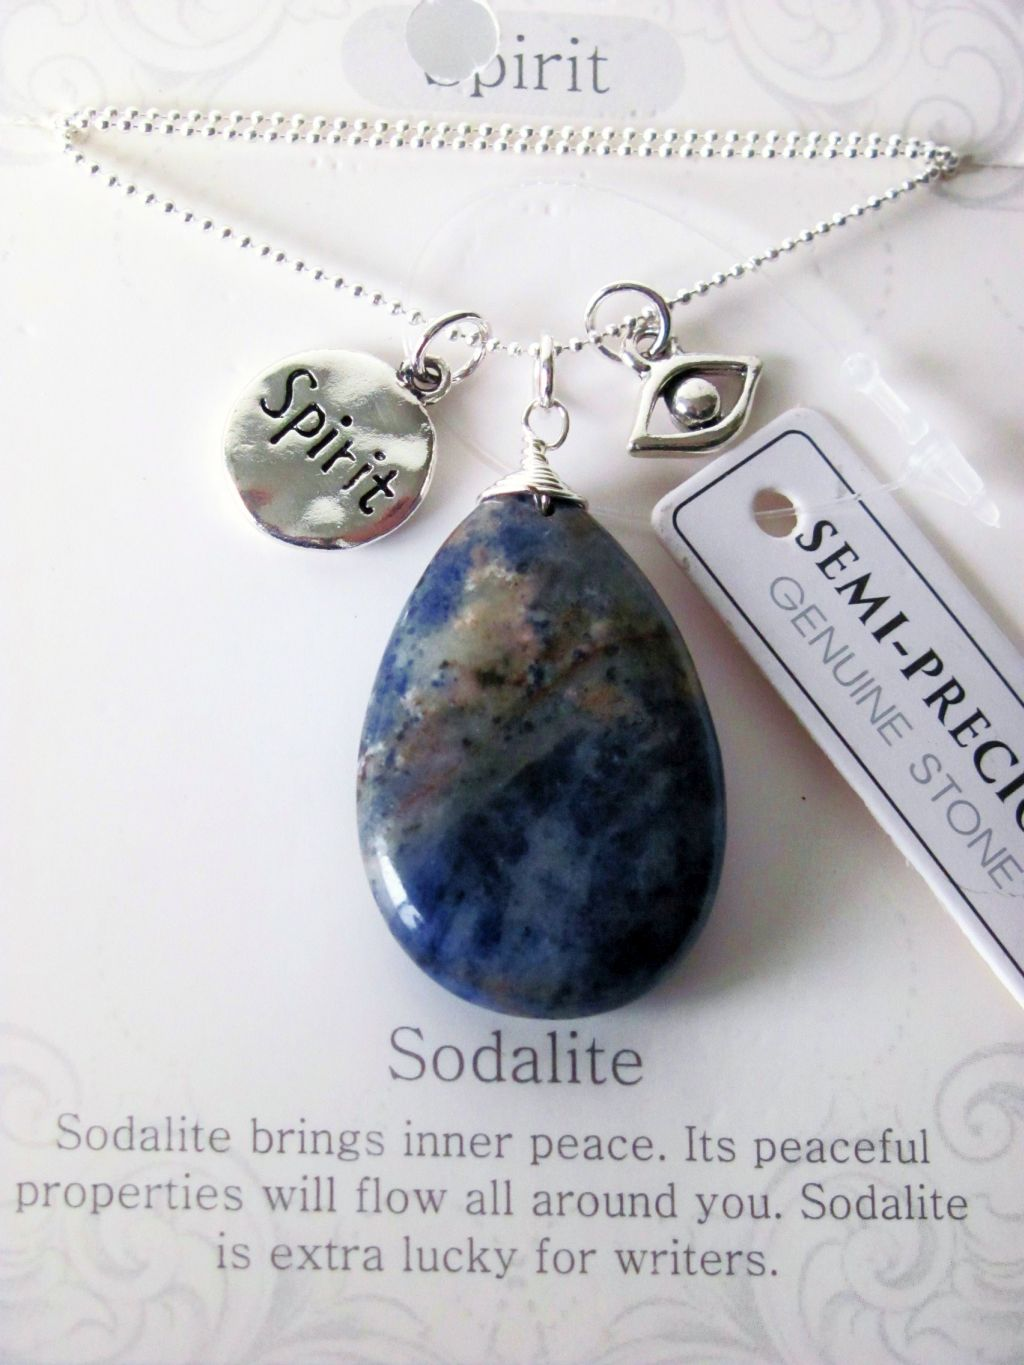 Spirit Stone Genuine Sodalite Tear Drop Pendant Necklace w/ Charms